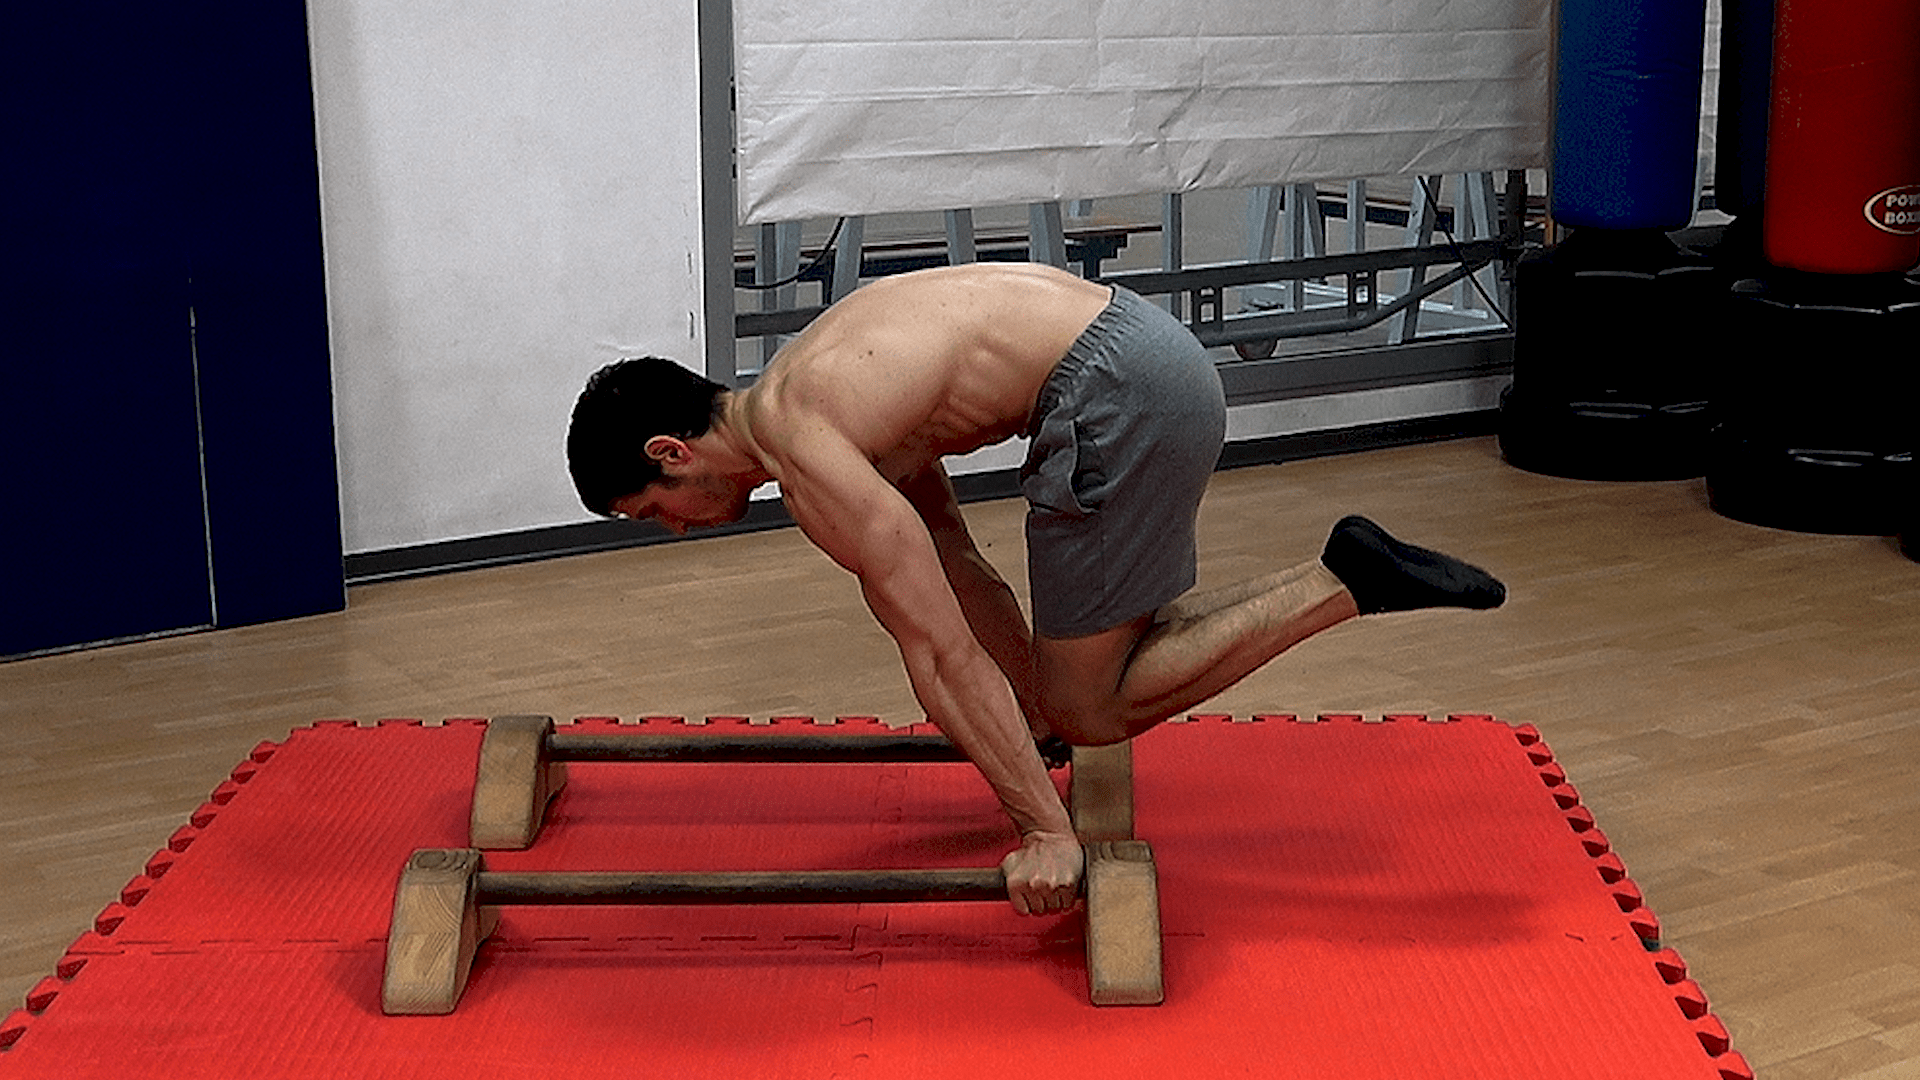 Alessandro Mainente esegue la Advanced Tuck Planche